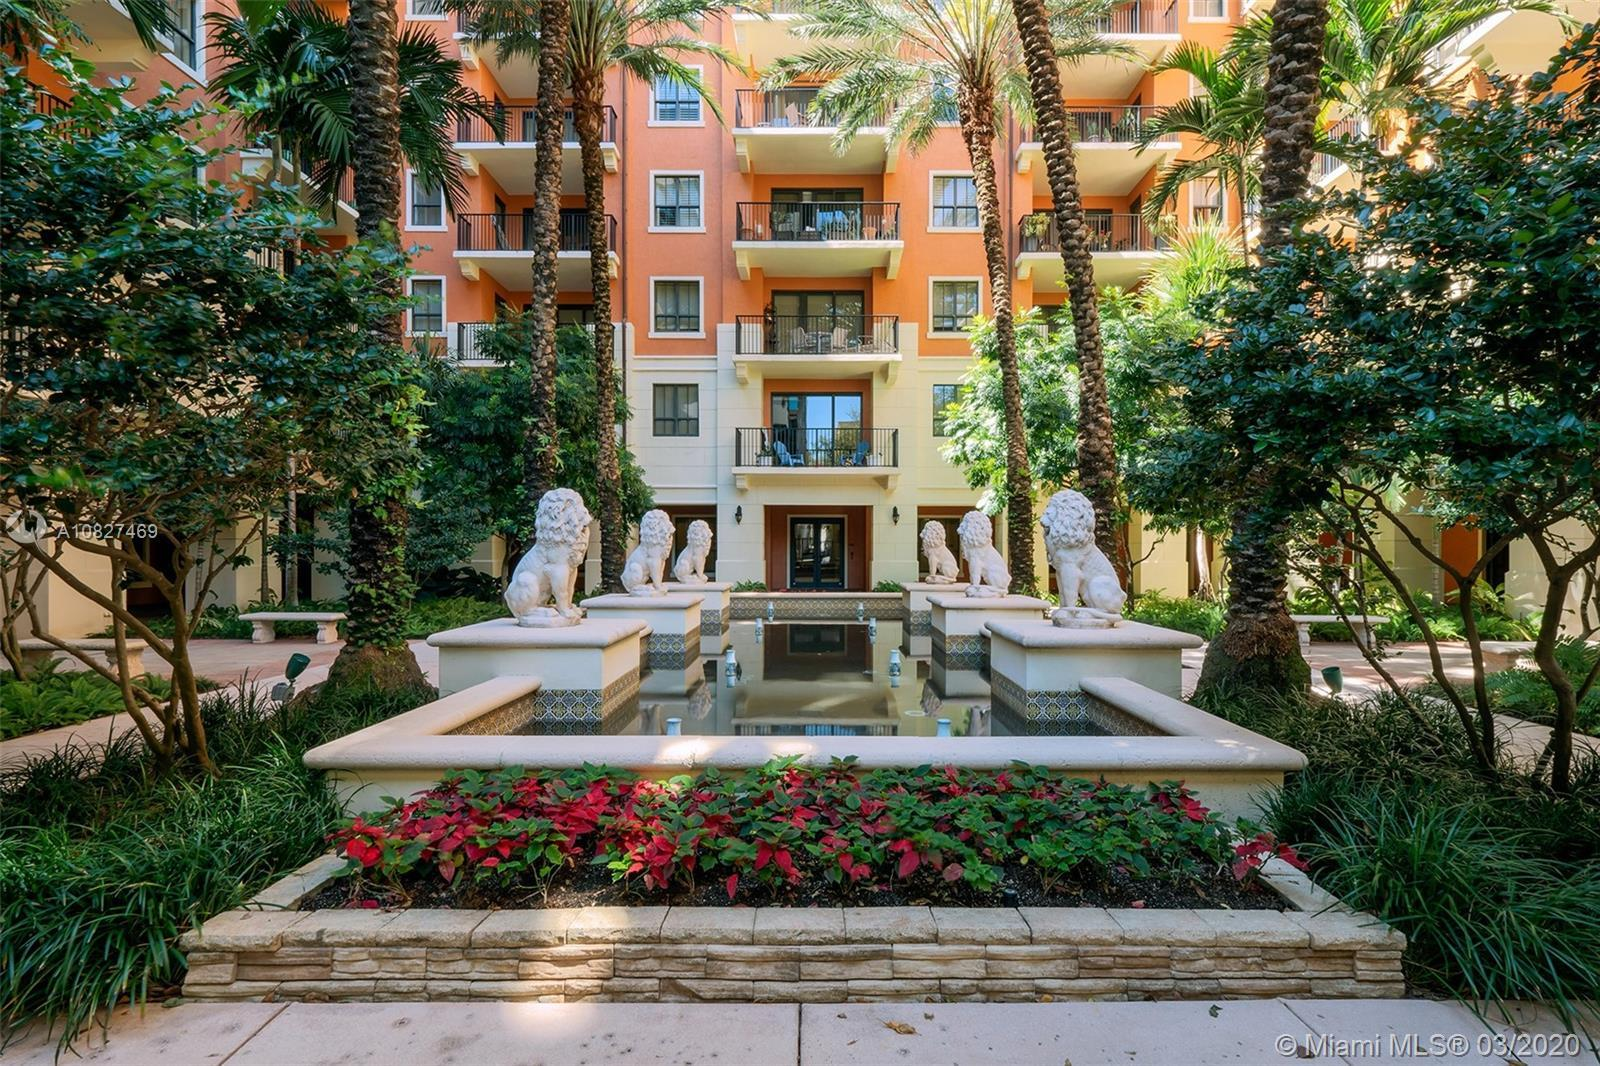 100 Andalusia, a luxury boutique building located in Coral Gables just one block from Miracle Mile,